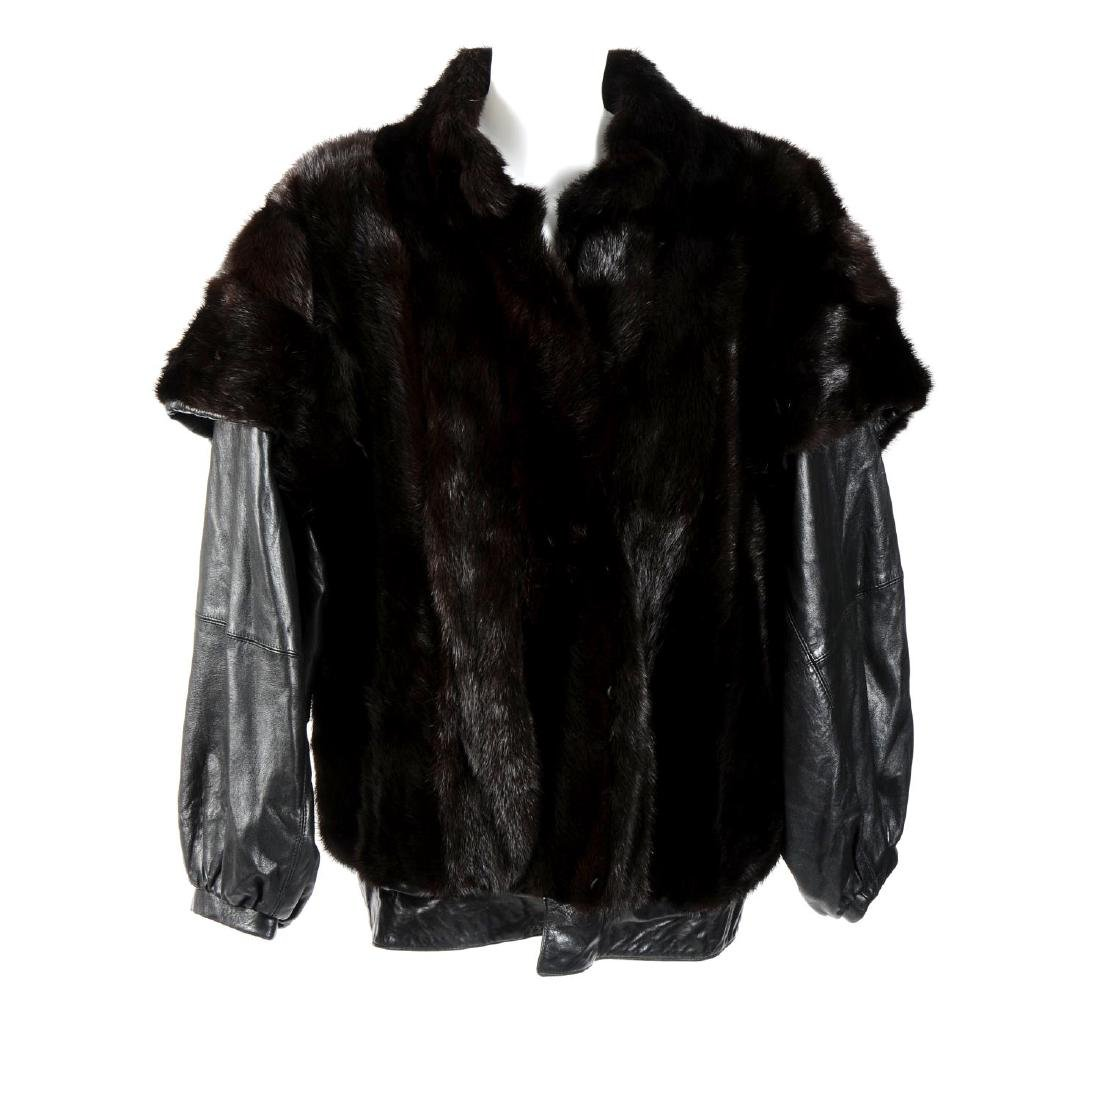 A mink and leather jacket. Designed in a blouson jacket